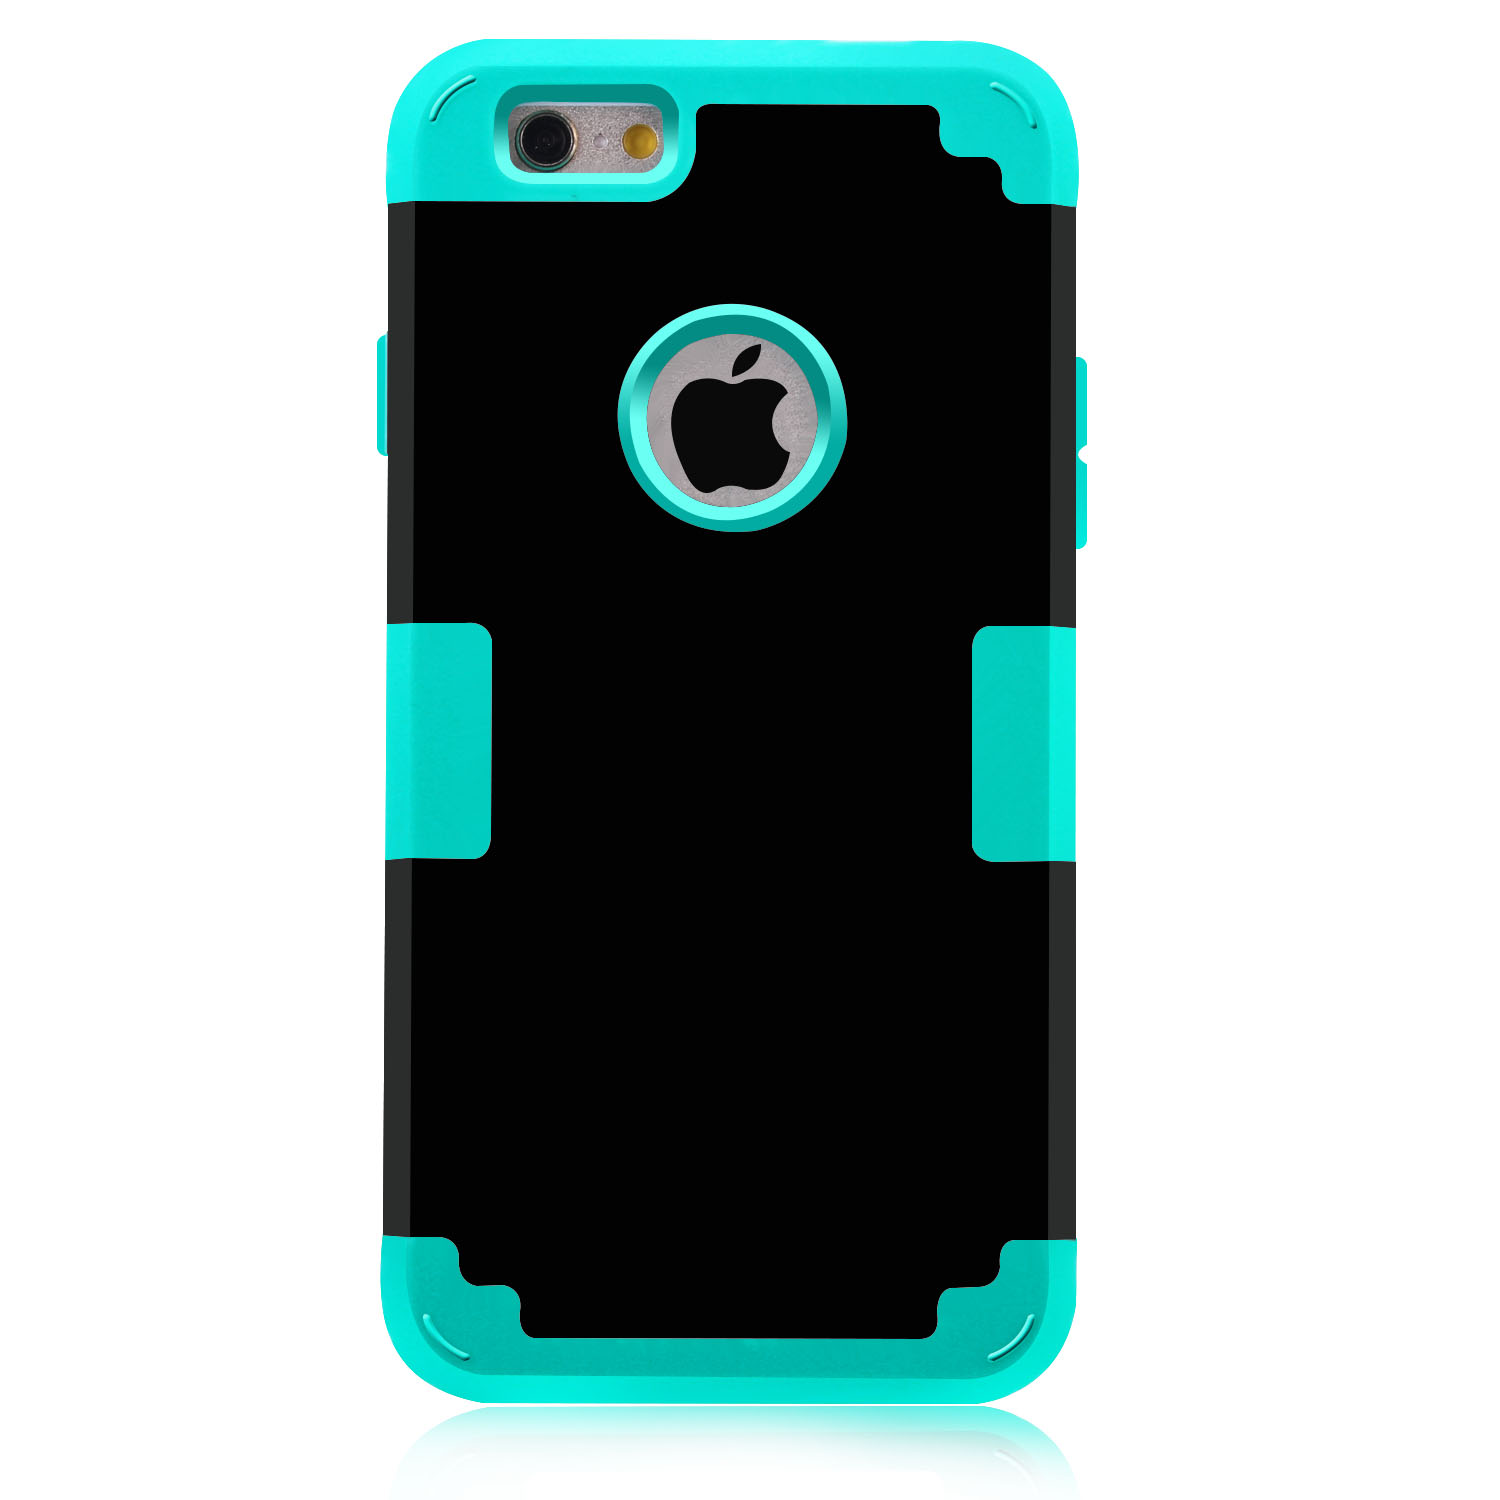 newest collection 44ccc 6e64a For Apple iPhone 7 Case Shockproof Protect Hybrid Hard Rubber Impact Armor  Phone Cases For iPhone 5//5S/5C/SE/6/6S Plus/7 Cover-in Fitted Cases from  ...